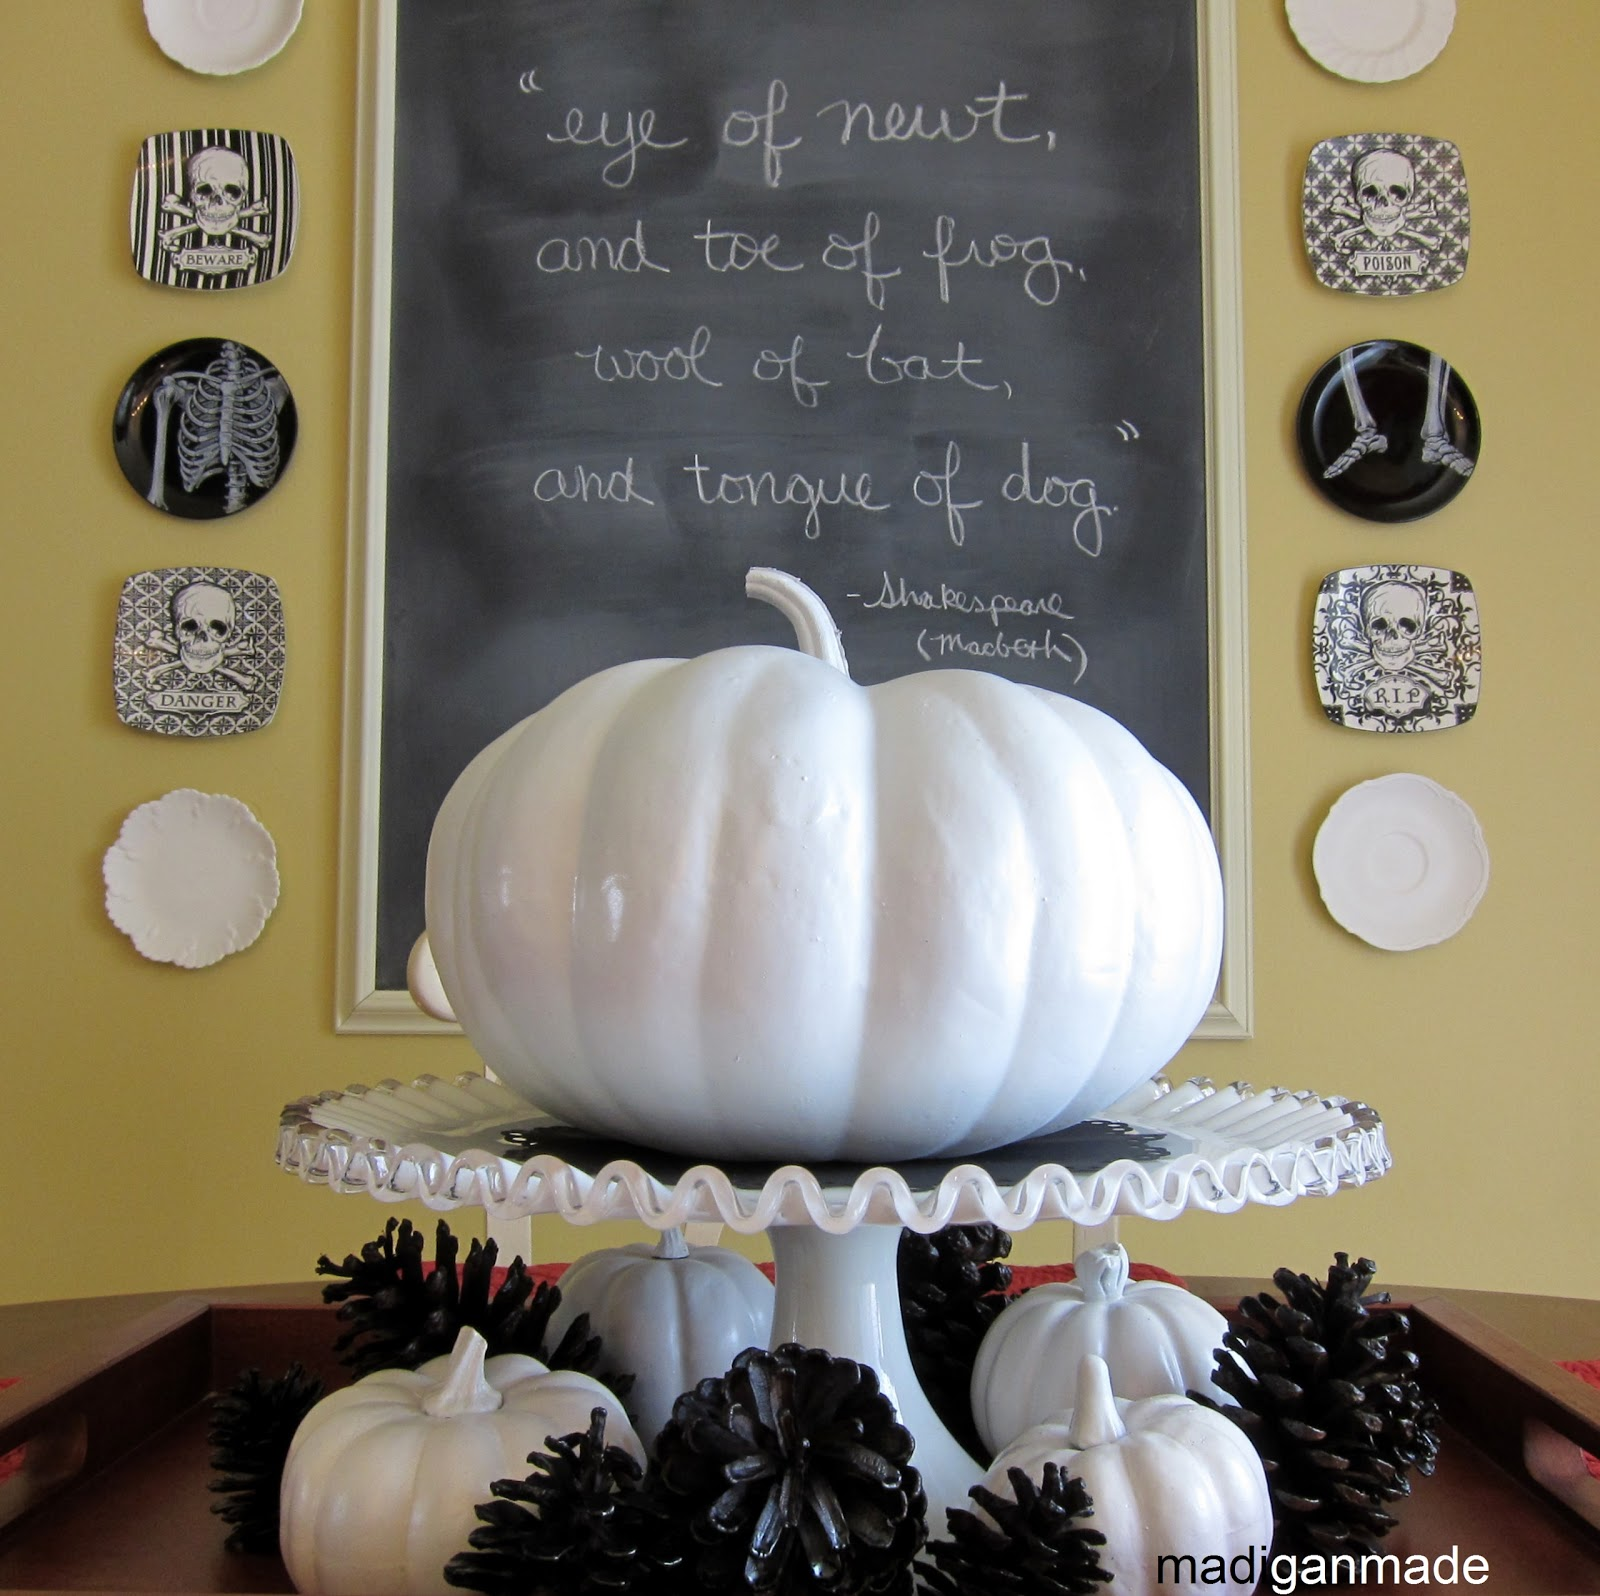 Halloween décor was simple, classic and a little vintage